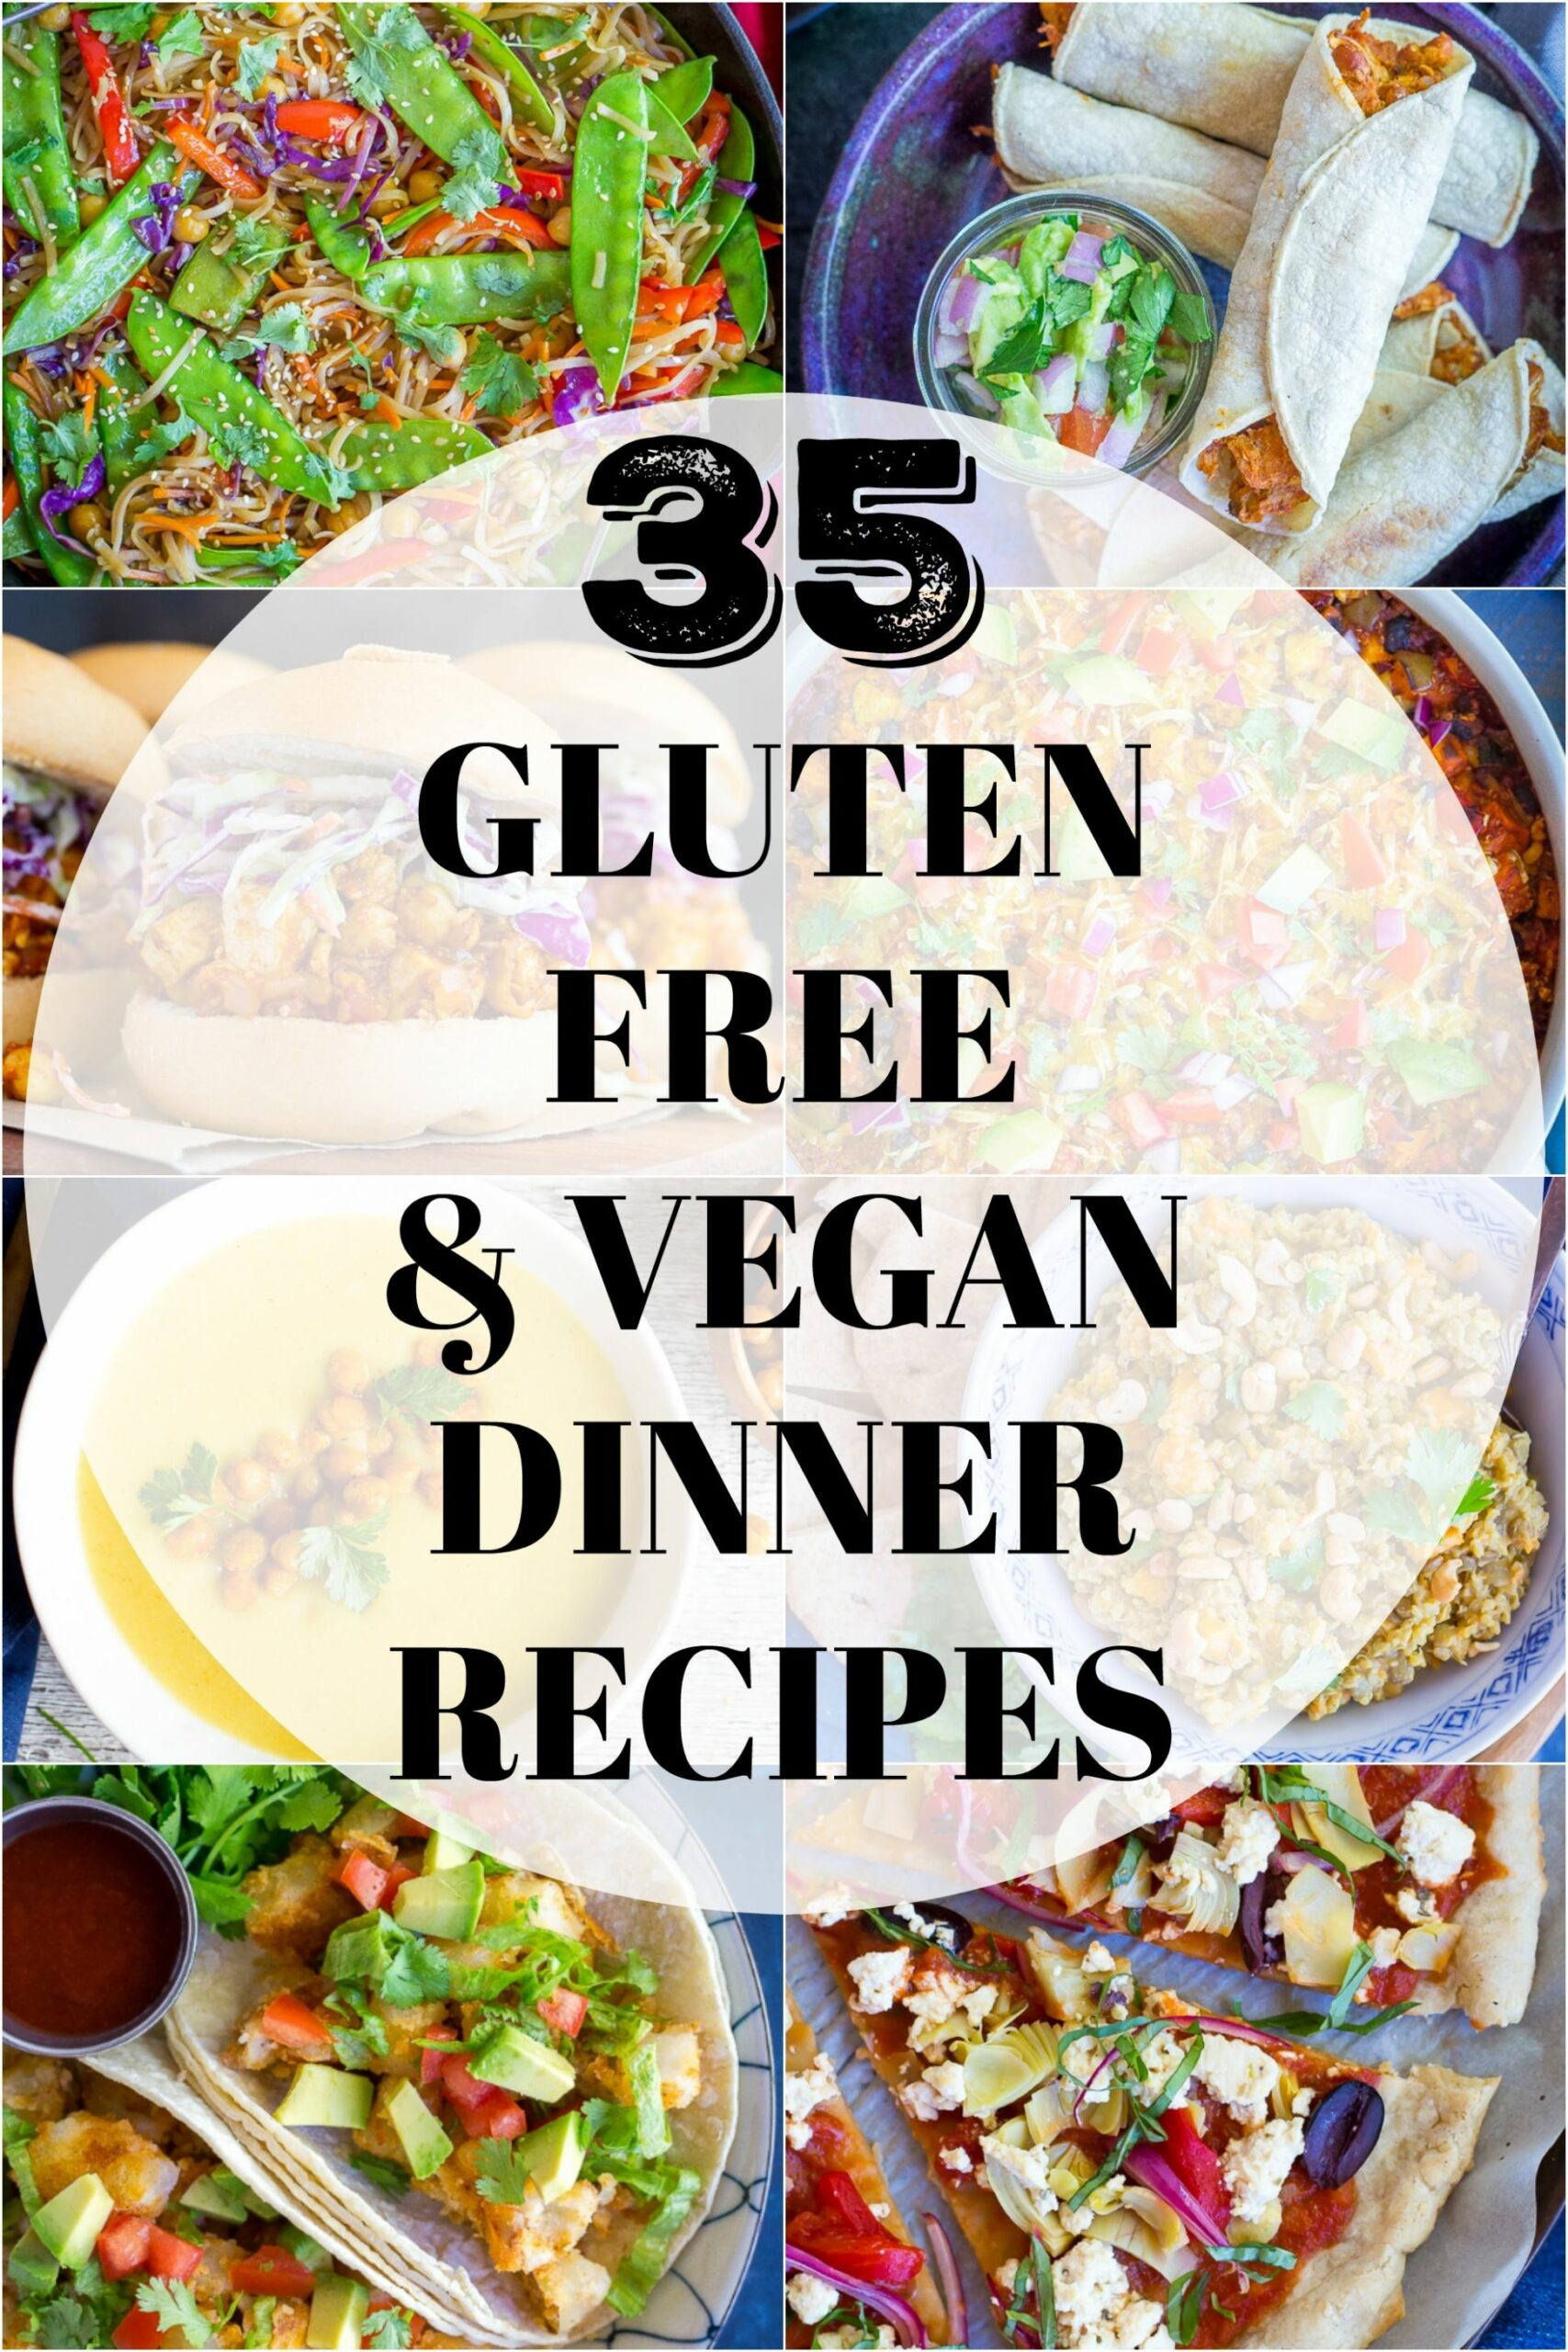 9 Vegan & Gluten Free Dinner Recipes - She Likes Food - Recipes Dinner Gluten Free